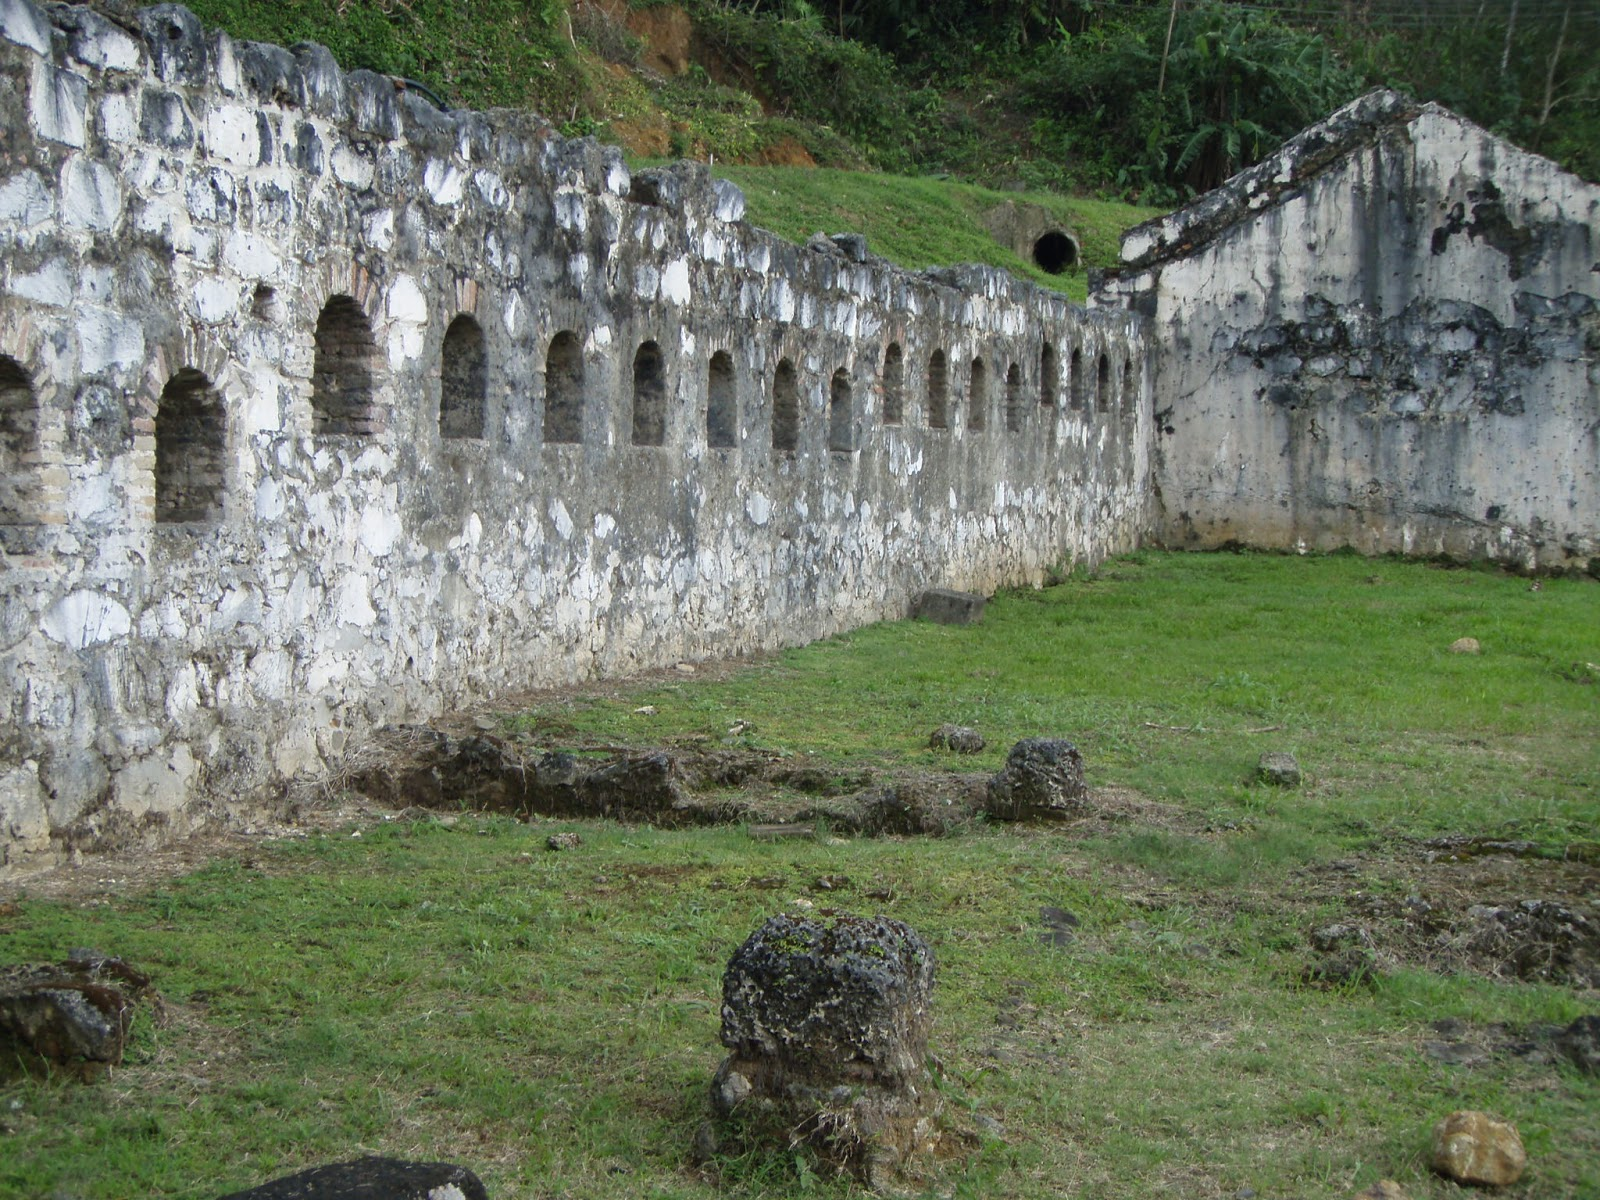 portobelo chat sites Once plagued by pirates, portobelo is a sleepy town along panama's caribbean coast that houses the crumbling ruins of spanish forts chat with an expert.